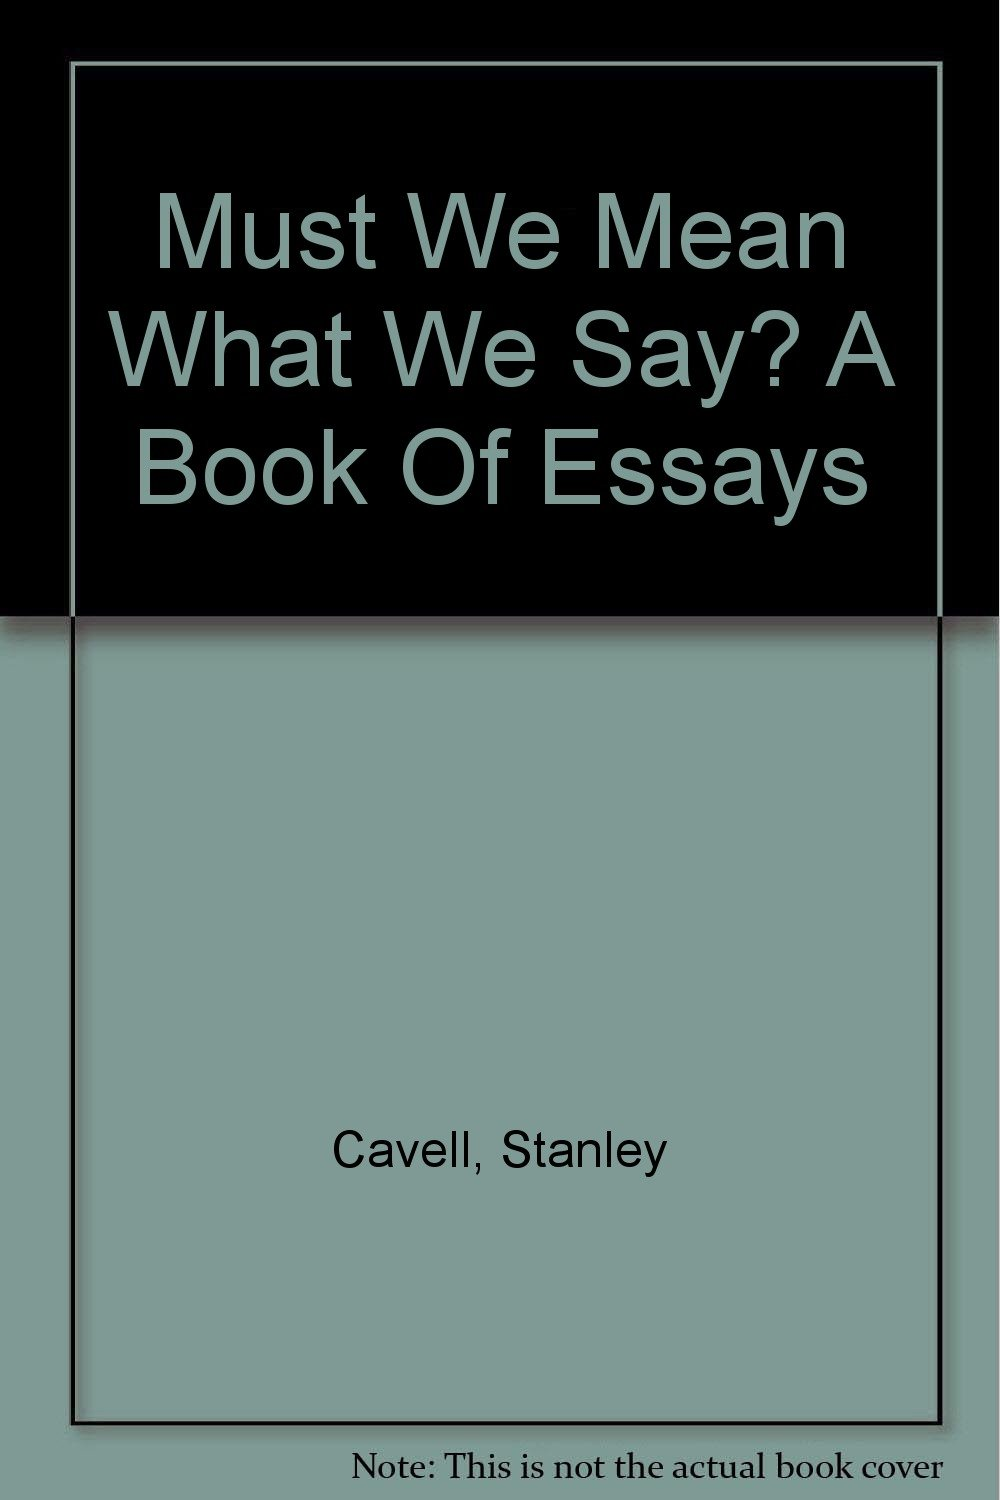 what is a book of essays